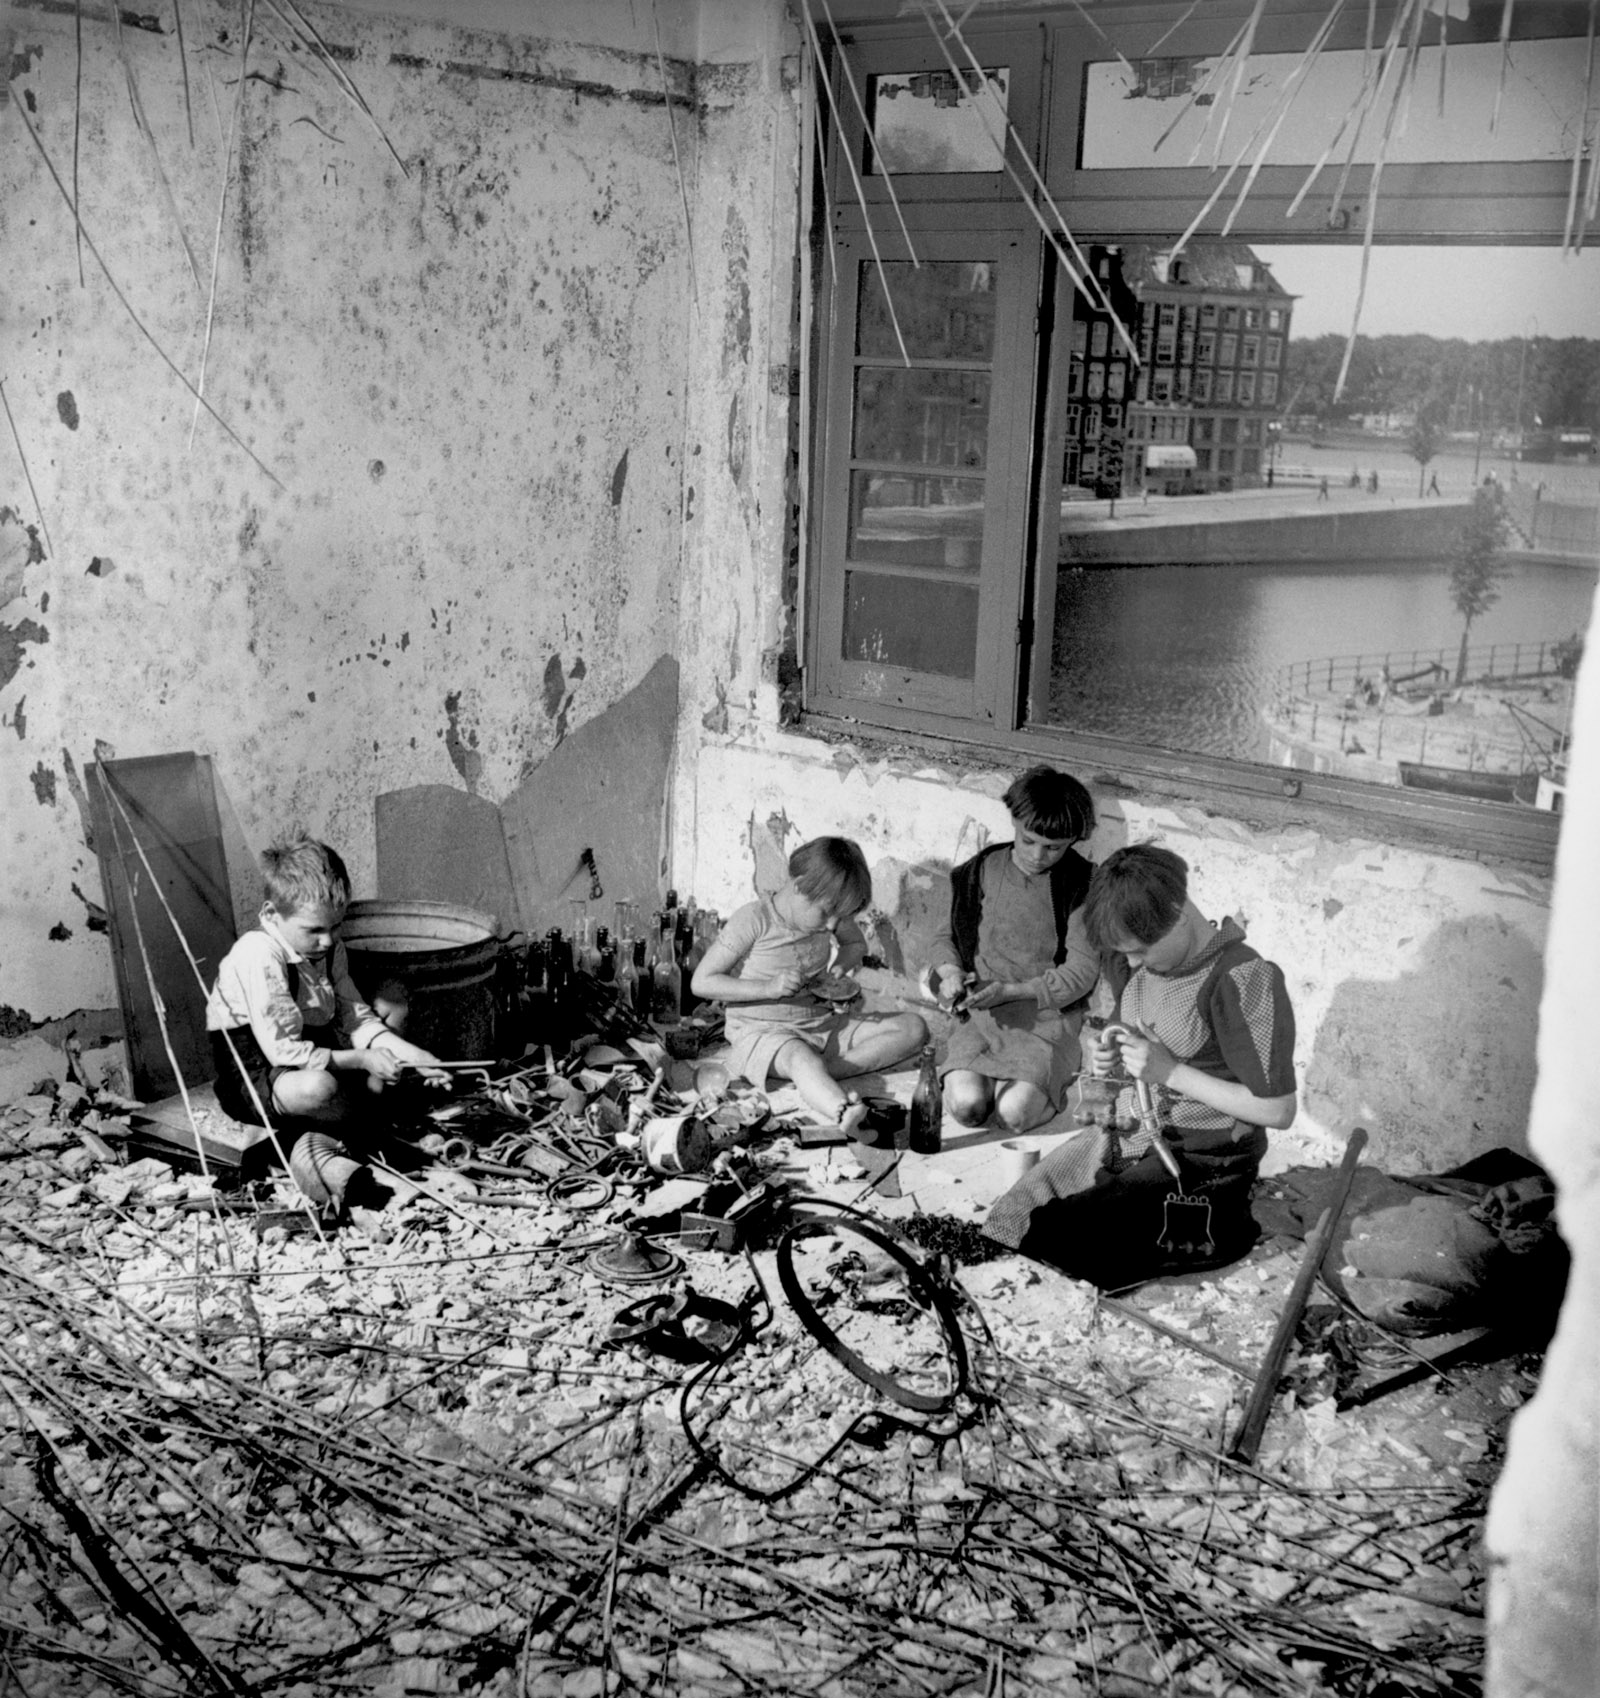 Children in the rubble of a house destroyed during World War II, Amsterdam, 1945